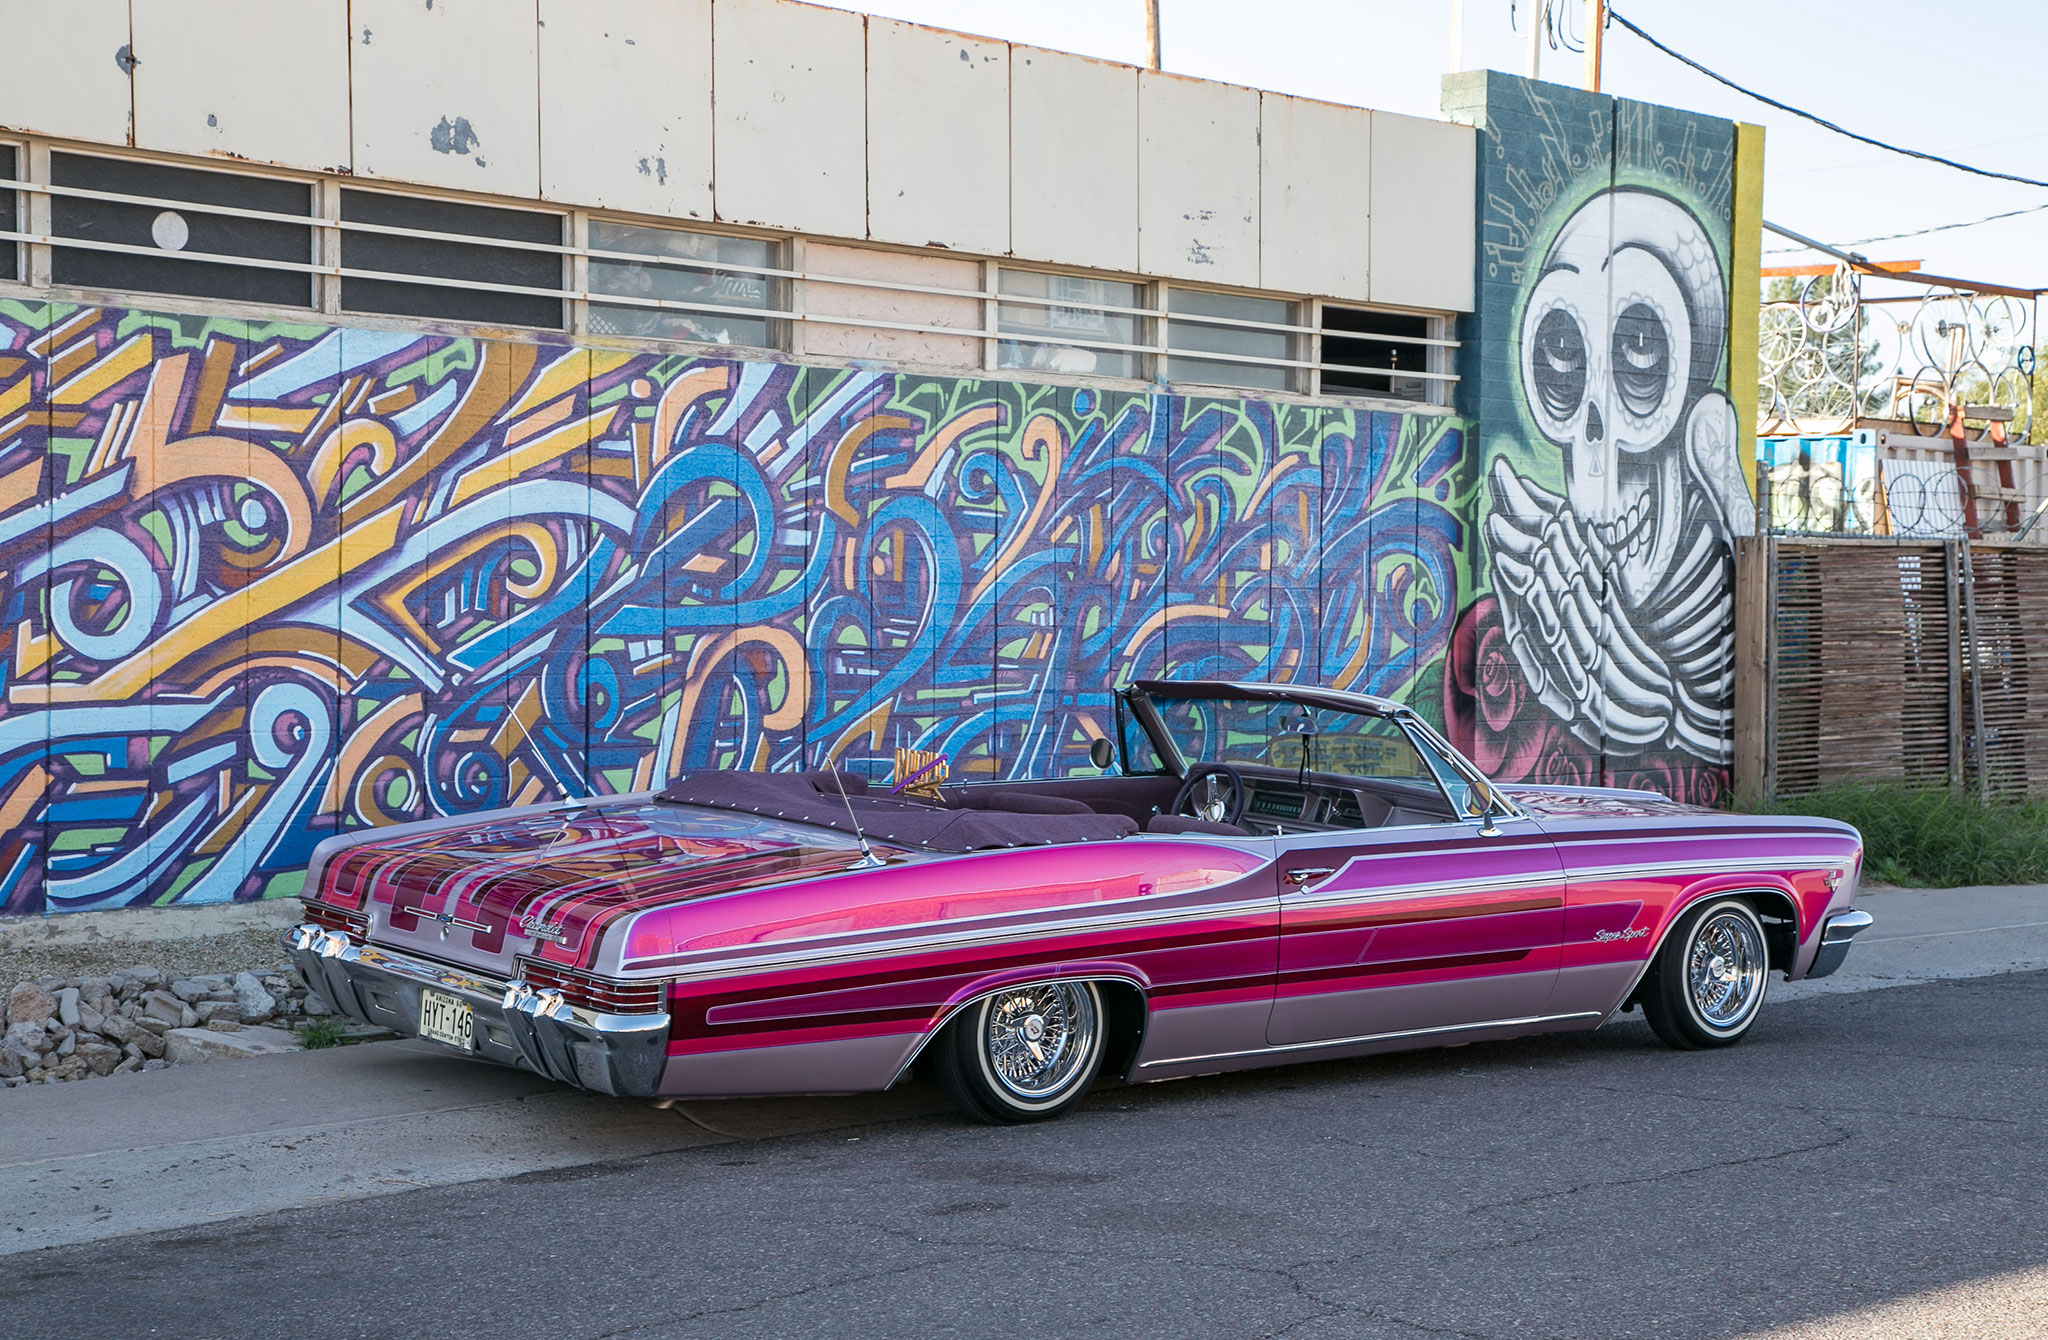 1966 Chevrolet Impala Convertible S.S. - Love Spell